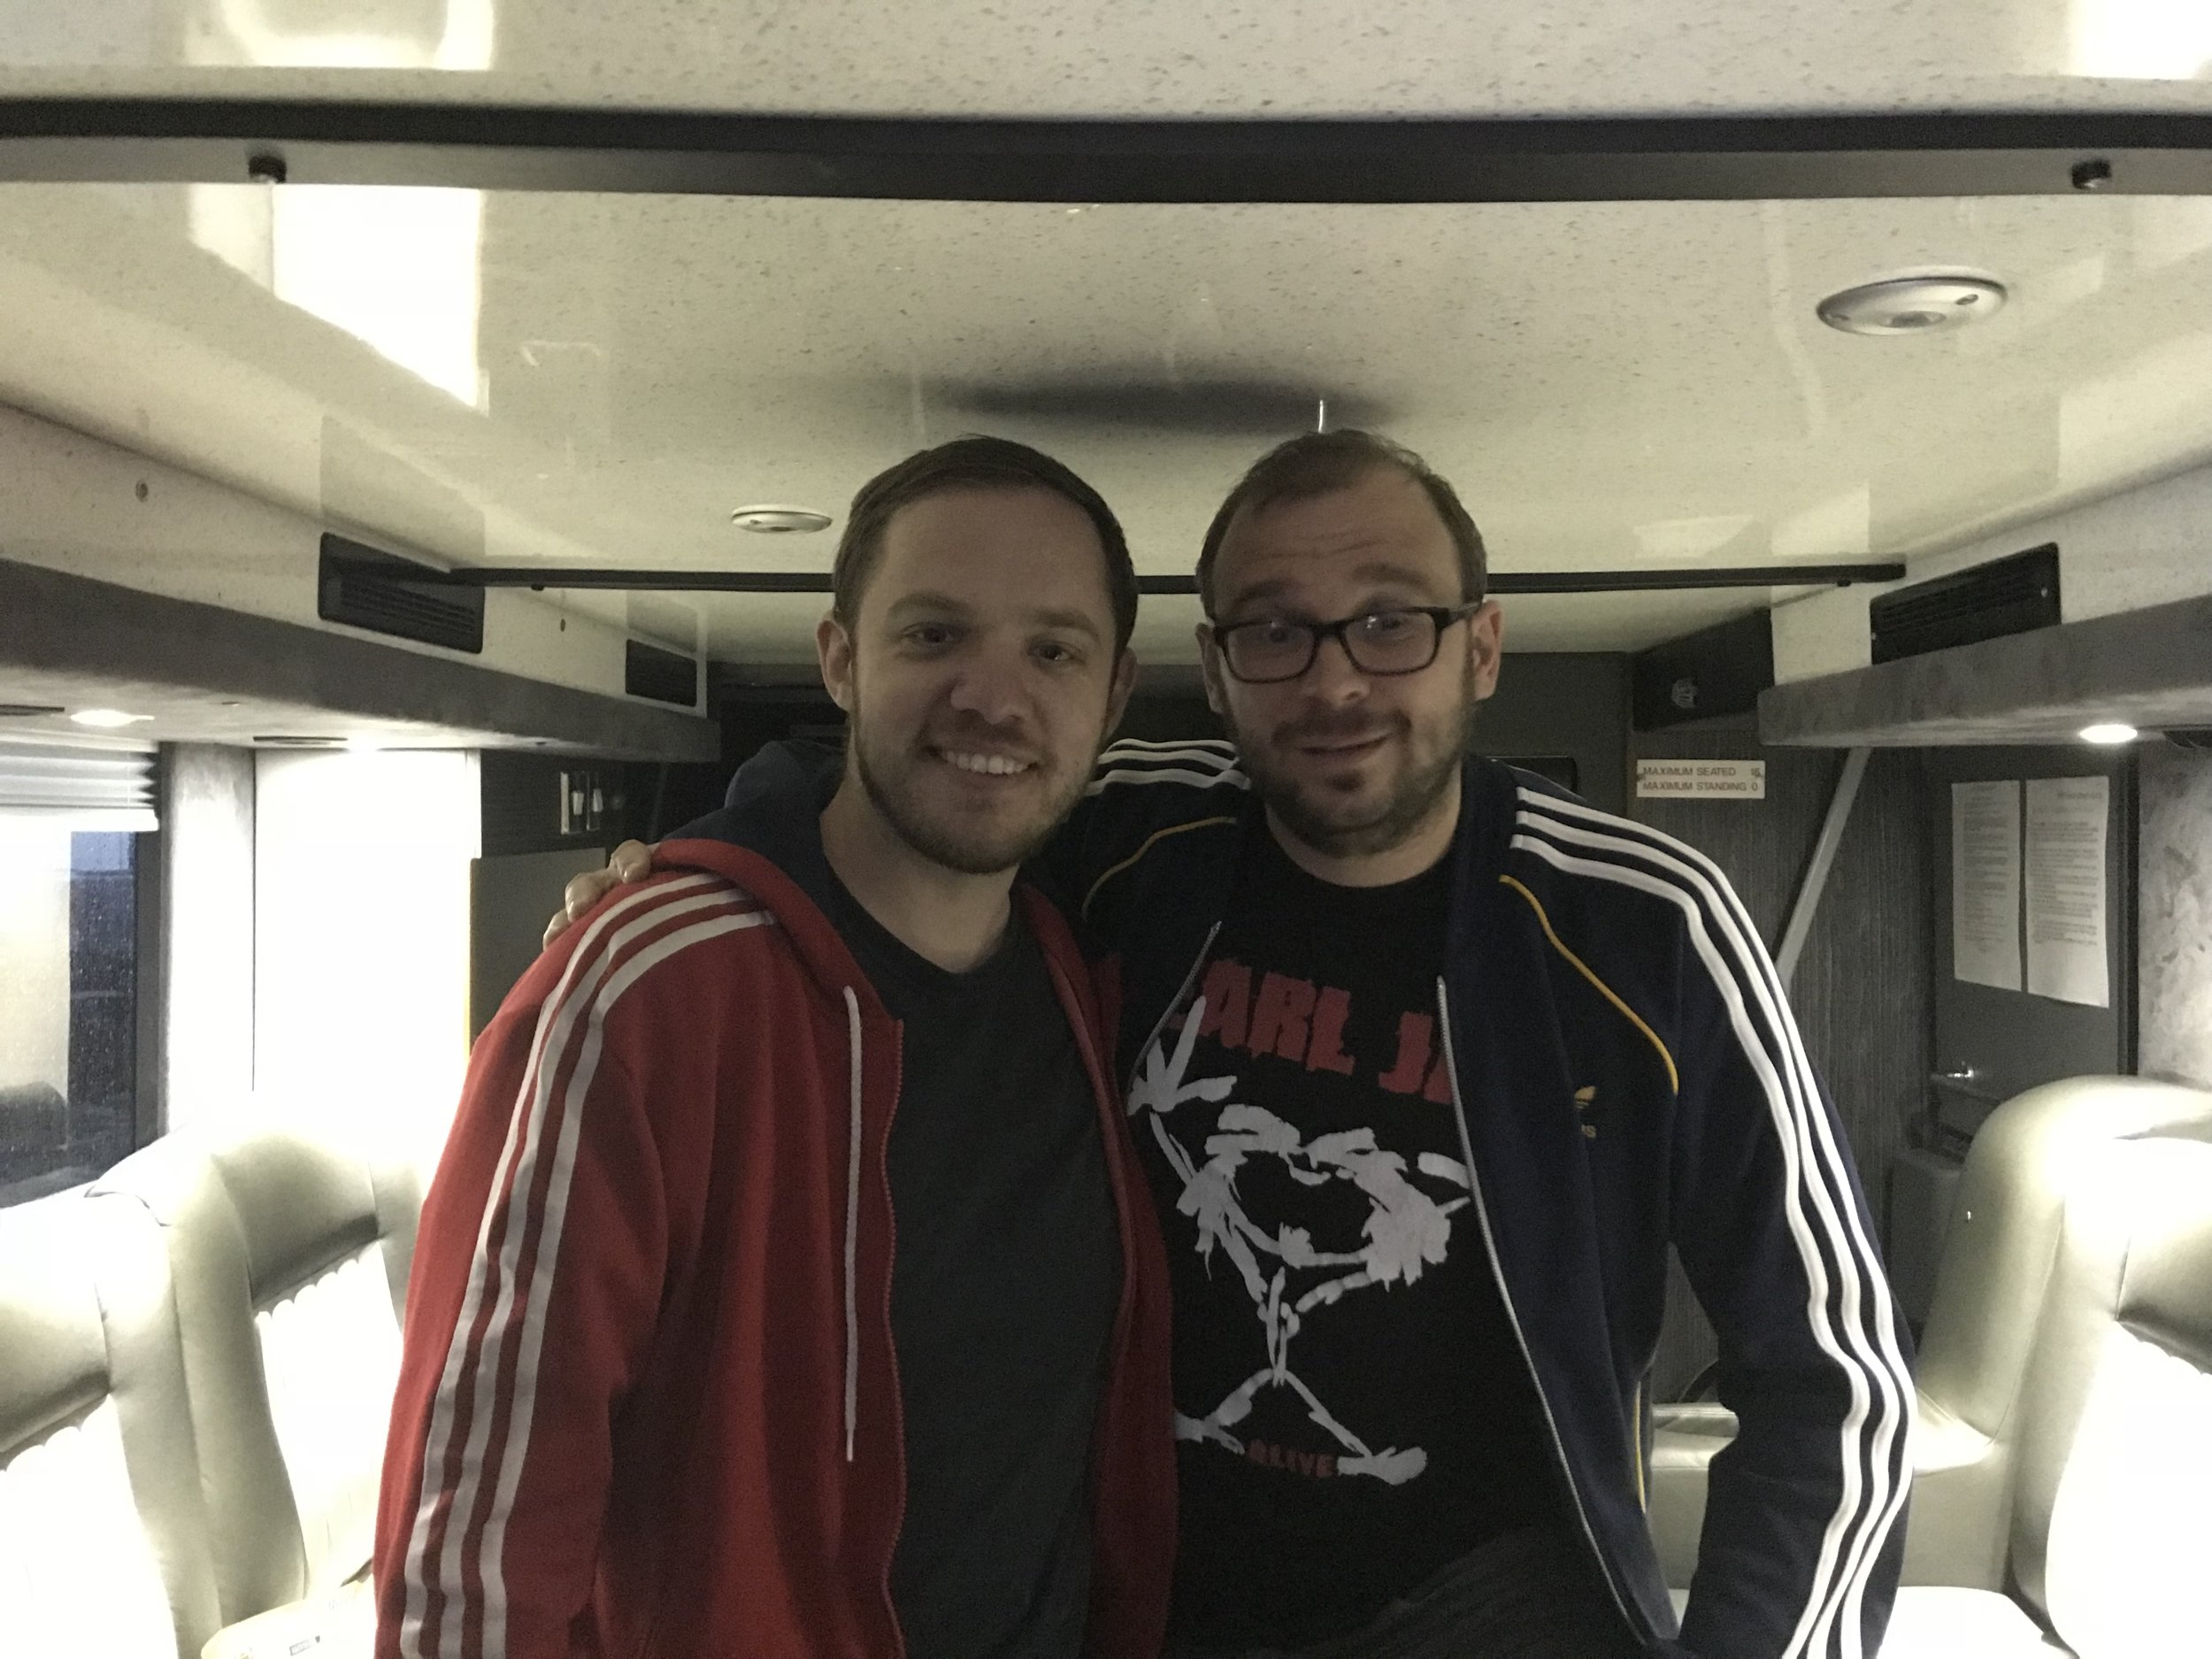 Ben re-living the 90's with Jon in their finest Adidas gear as he draws one all with me on tour bus appearances.